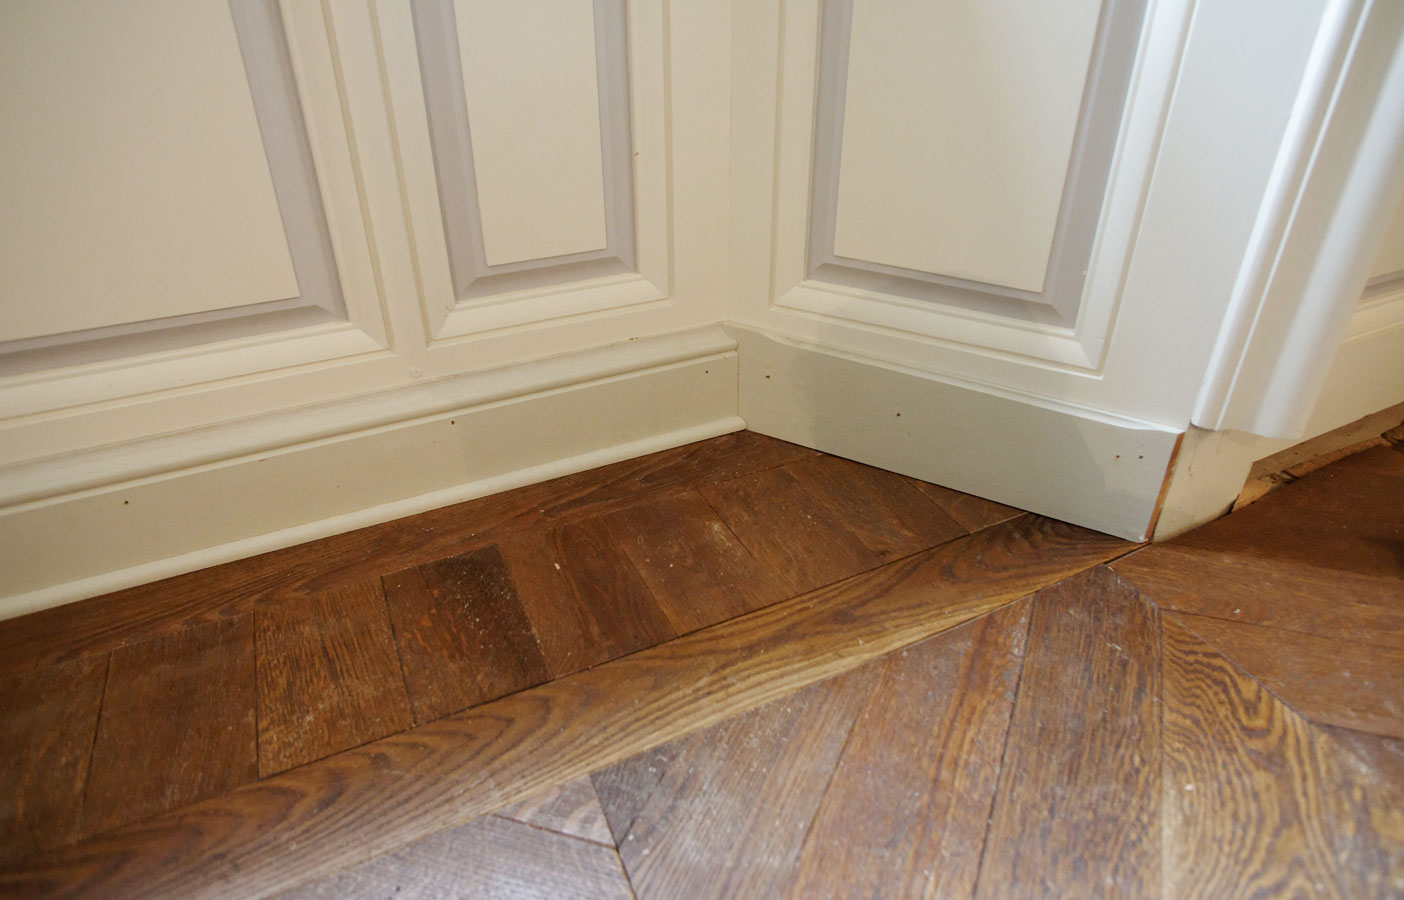 Parquet floor with an old apperence